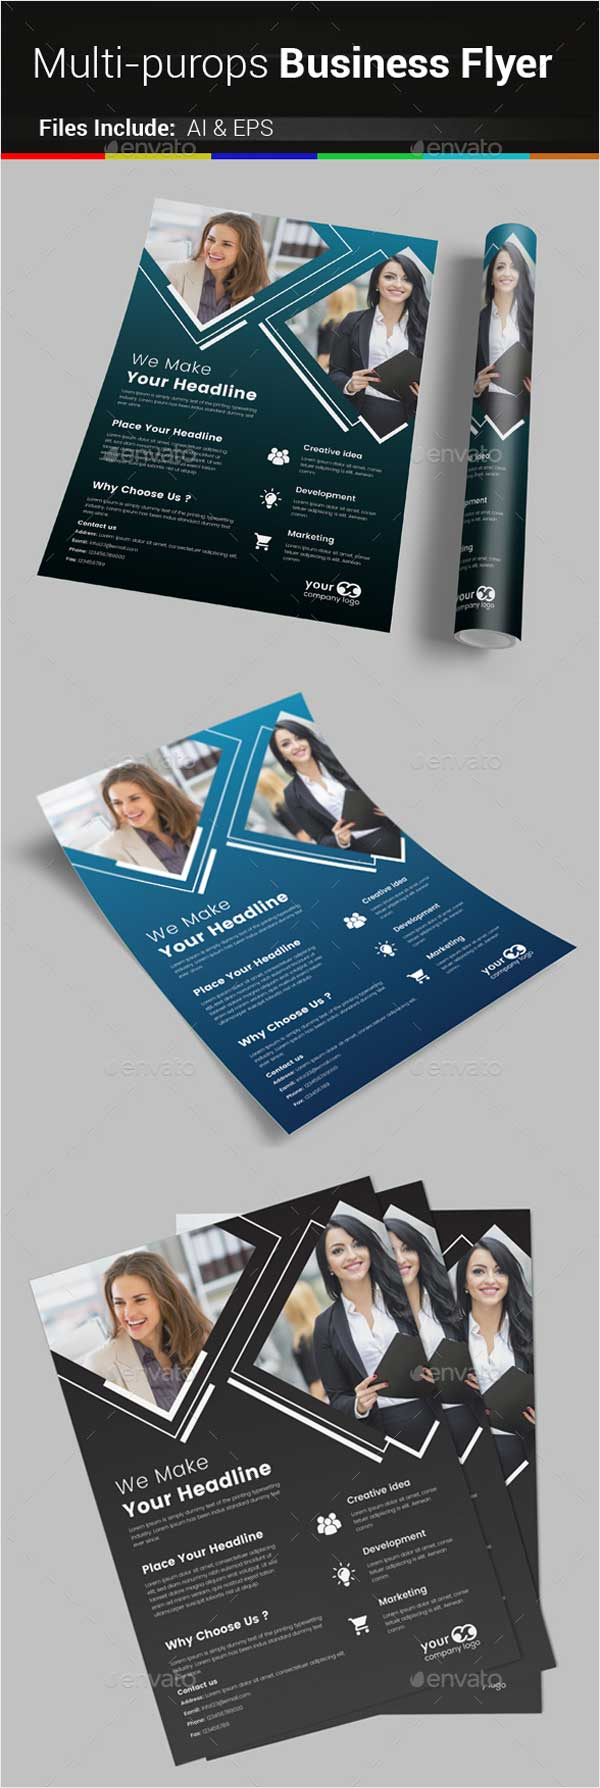 Business-Flyer-40